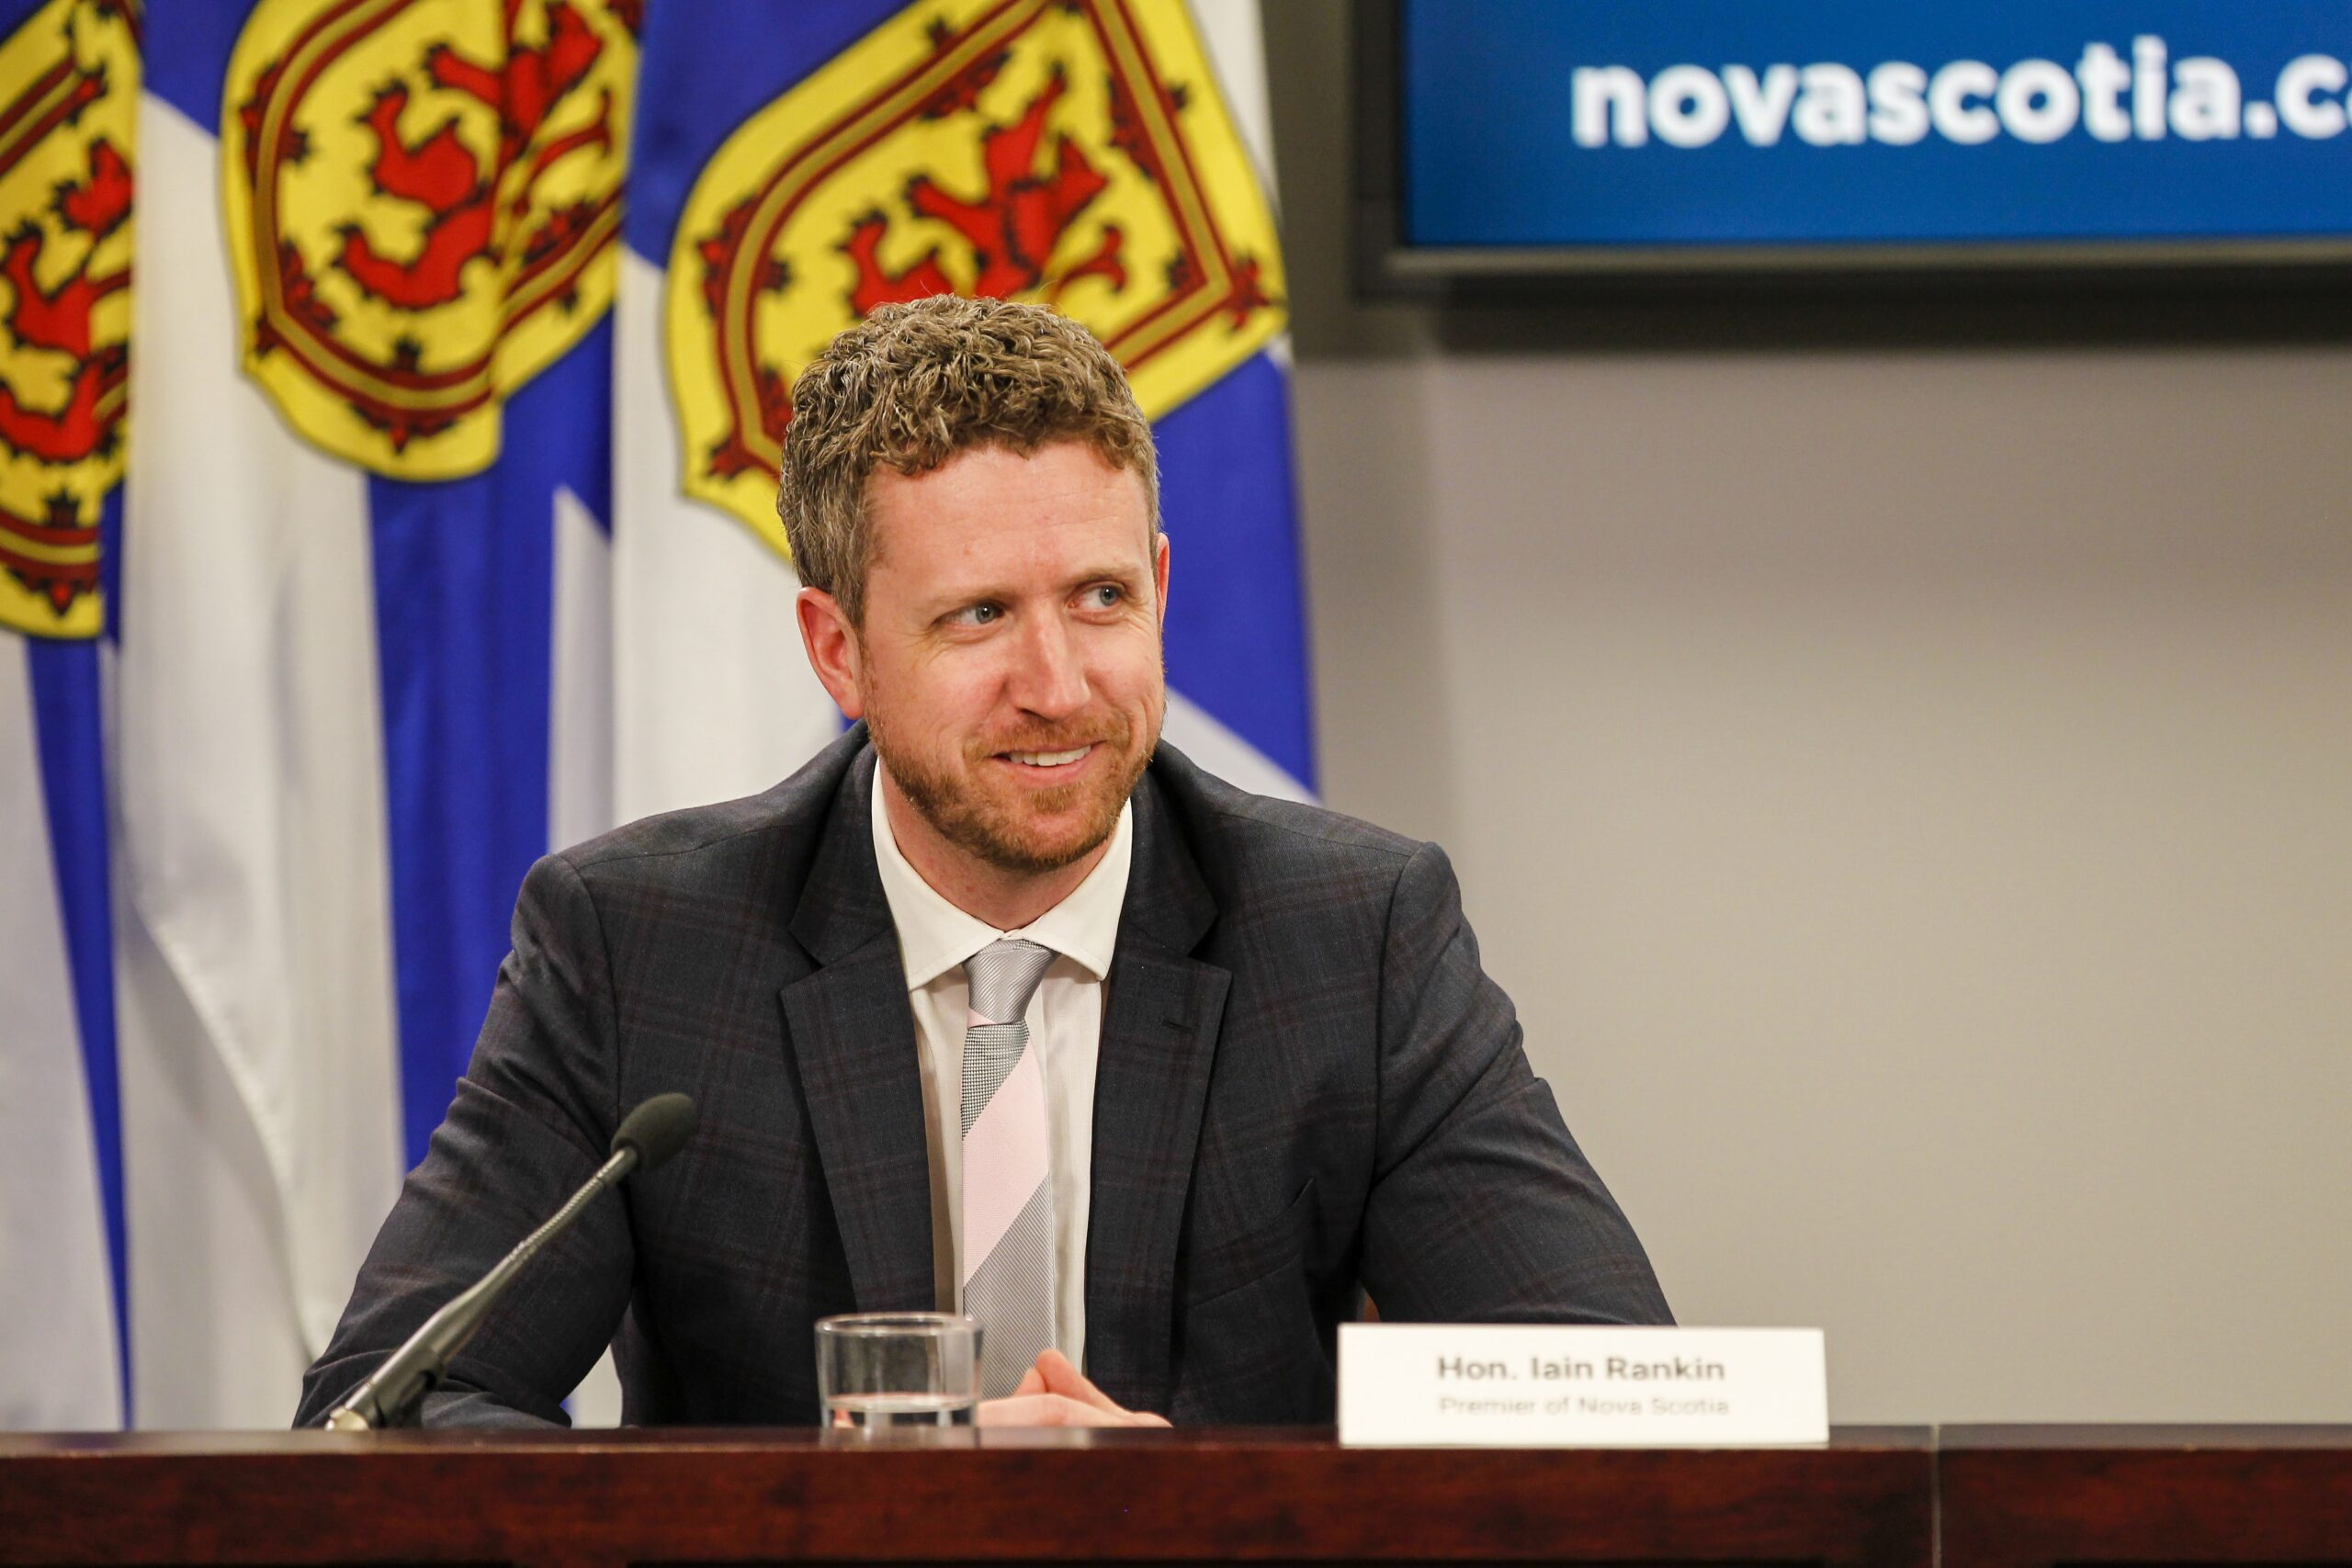 1 more COVID death in Nova Scotia and 6 new cases; Rankin rejects redeploying vaccine to provinces with out of control outbreaks